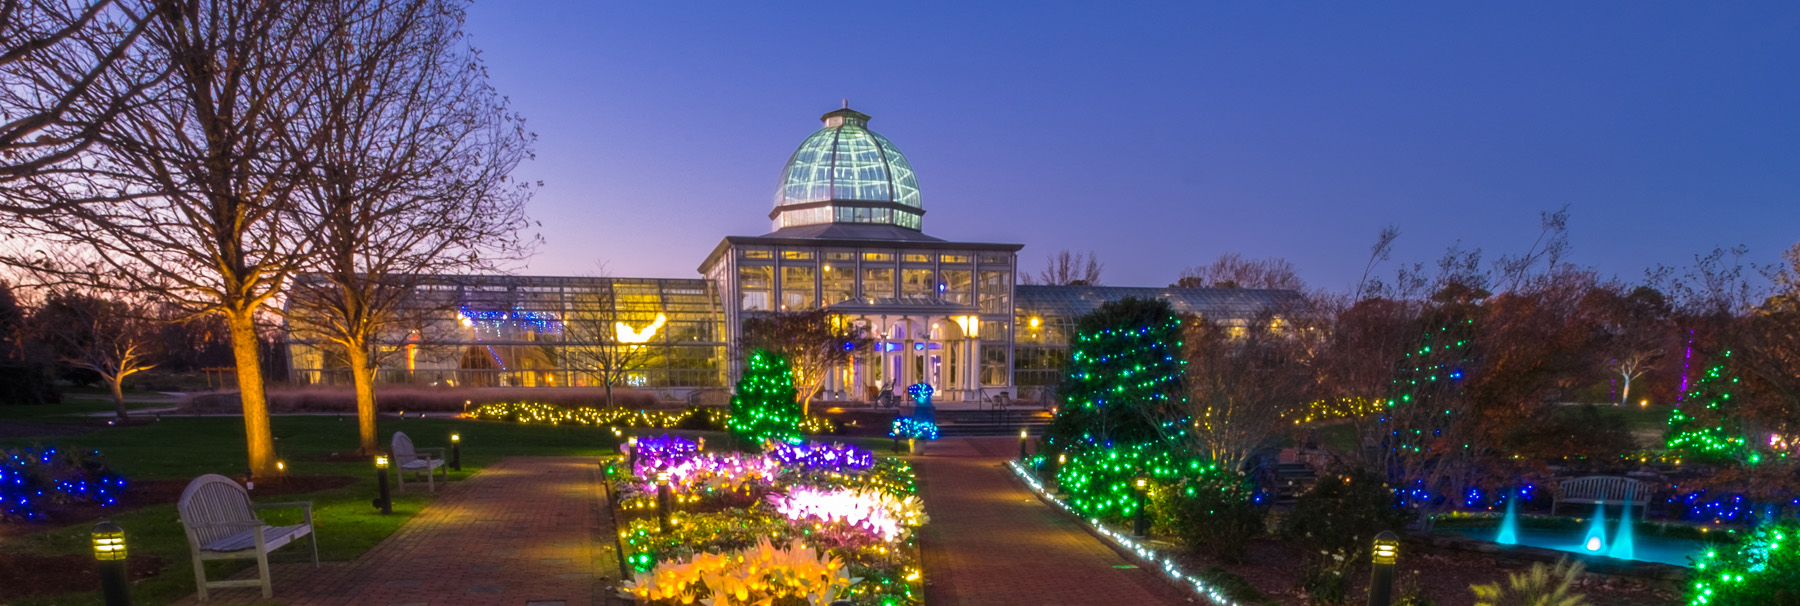 Holiday lights at dominion gardenfest of lights at lewis ginter botanical garden for Lewis ginter botanical gardens christmas